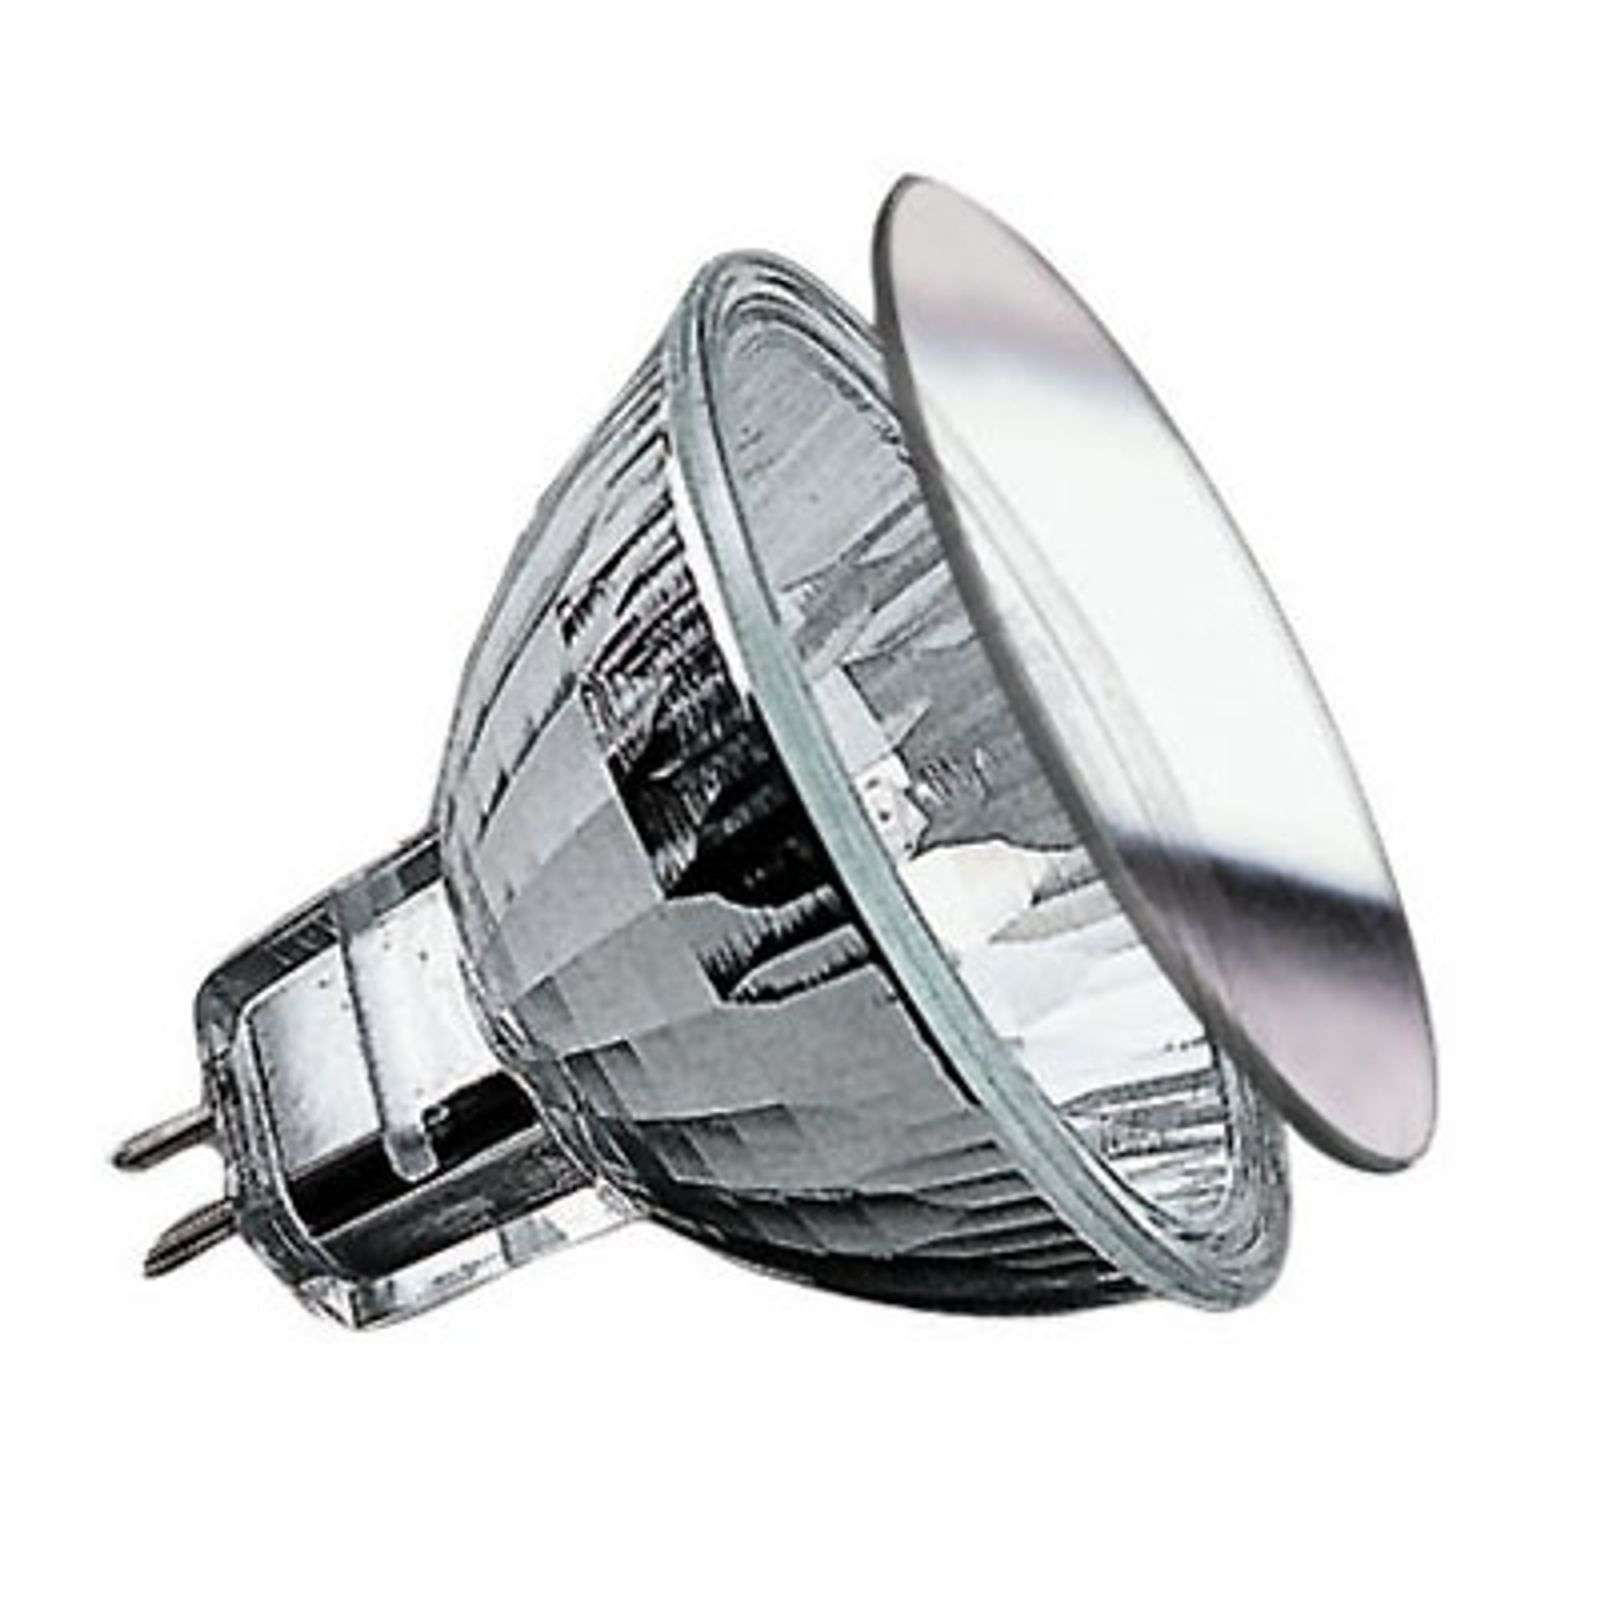 GU5,3 MR16 20W lampadina a riflettore Security Alu